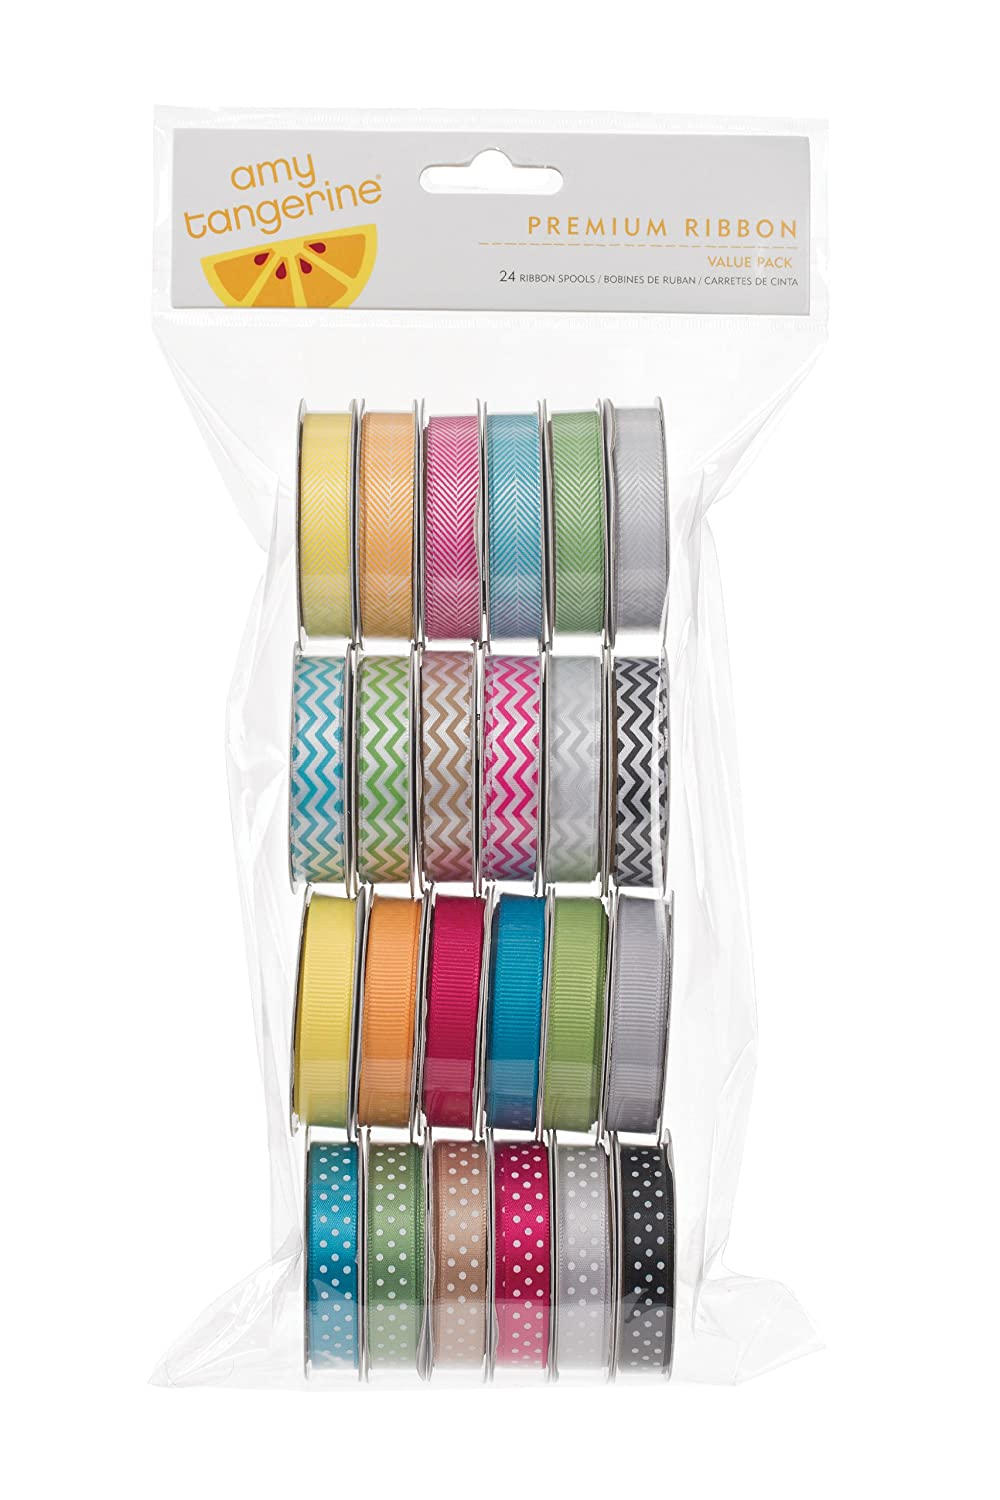 American Crafts 24-Pack Amy Tangerine Sketchbook Premium Ribbon